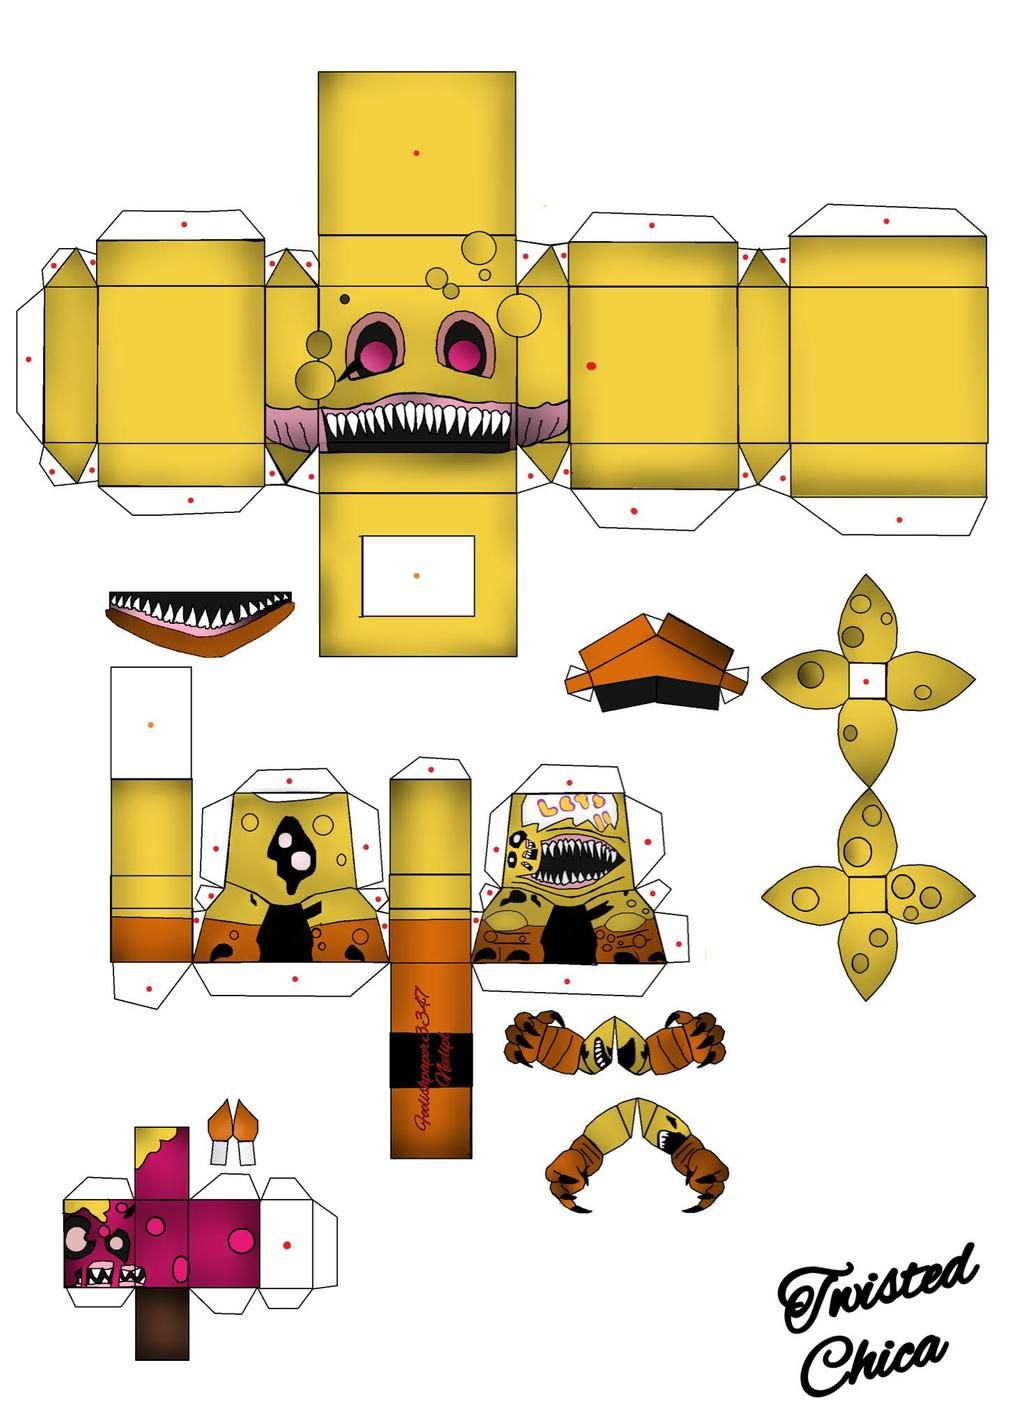 Halloween Funko Pop 2020 Five Nights At Freddy TWISTED CHICA FUNKO POP PAPERCRAFT by FOOLISHPAPER3347 on